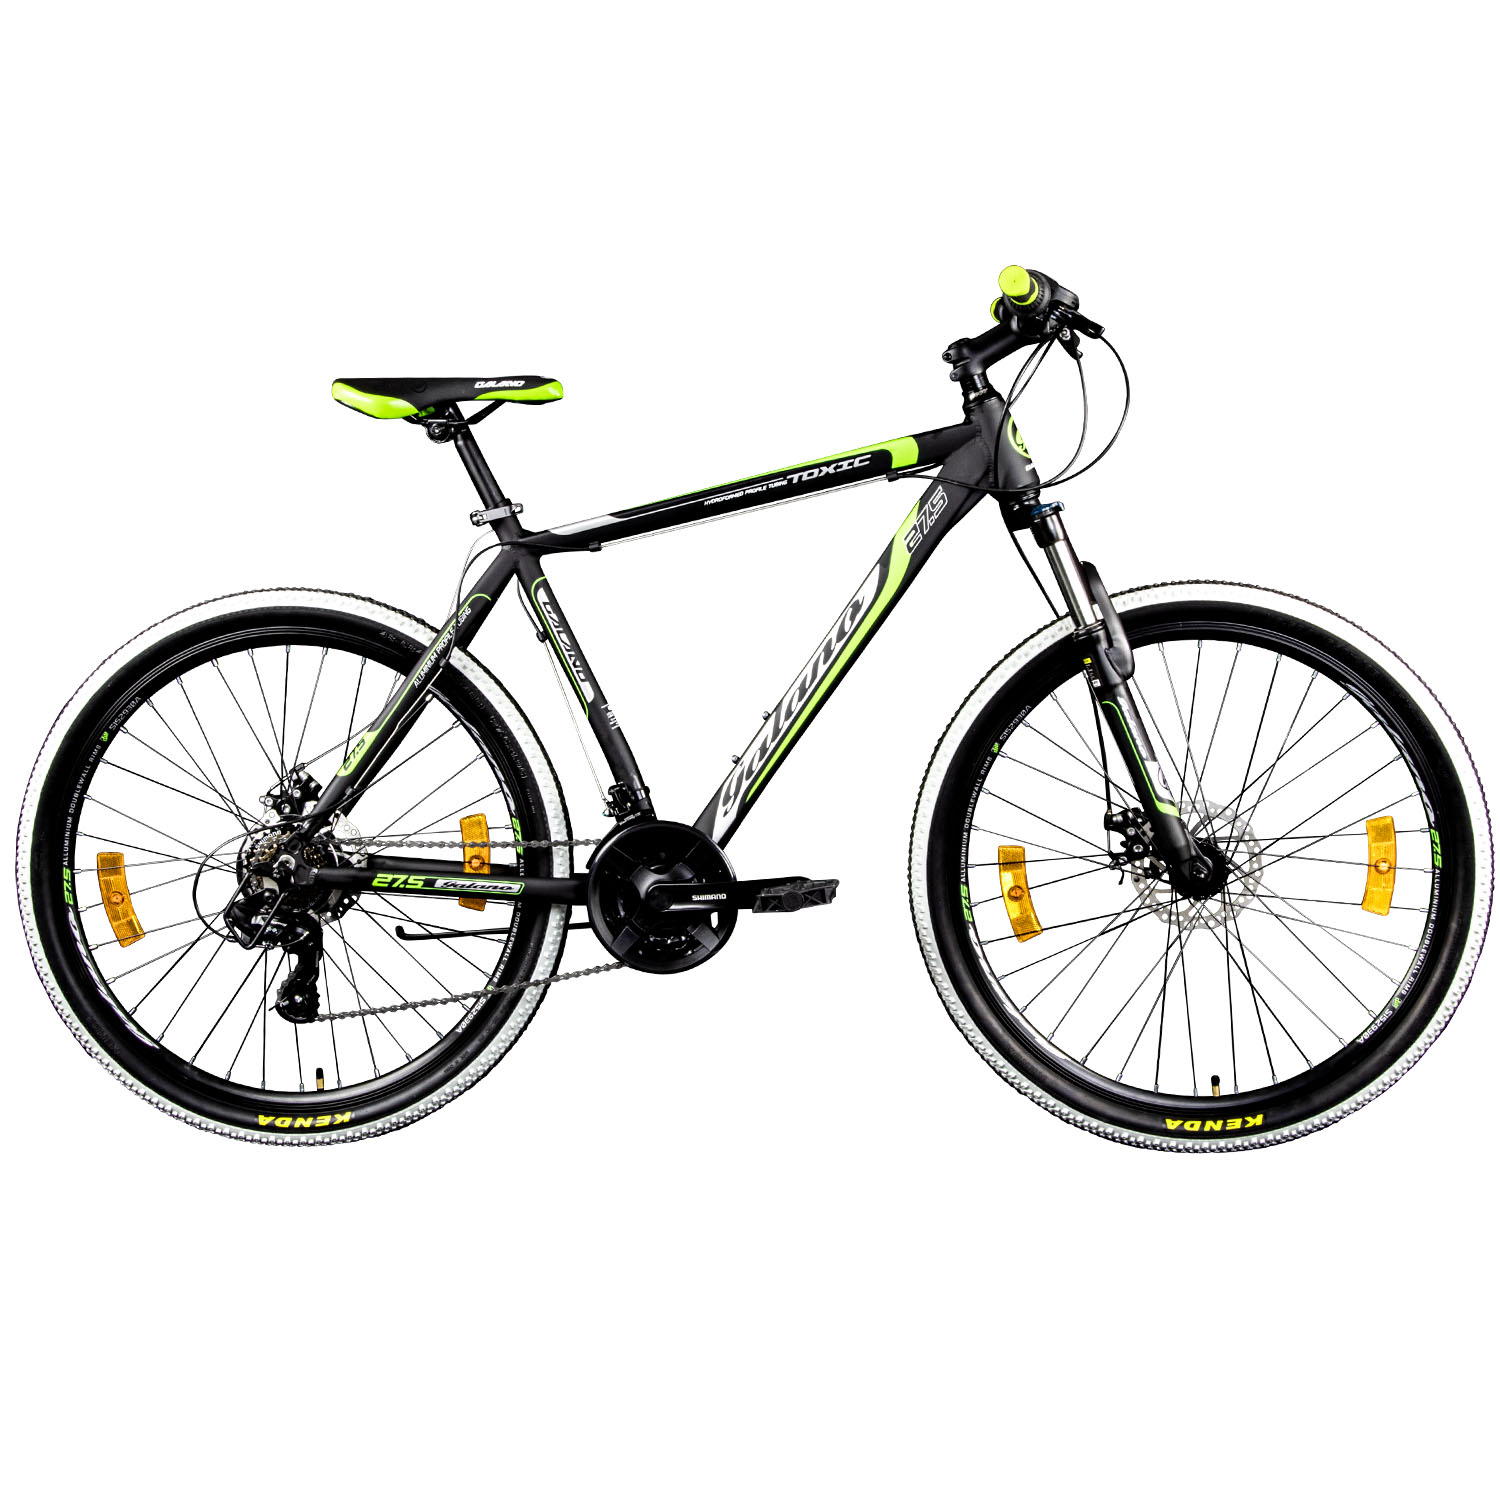 galano toxic 650b mtb mountainbike hardtail 27 5 zoll. Black Bedroom Furniture Sets. Home Design Ideas